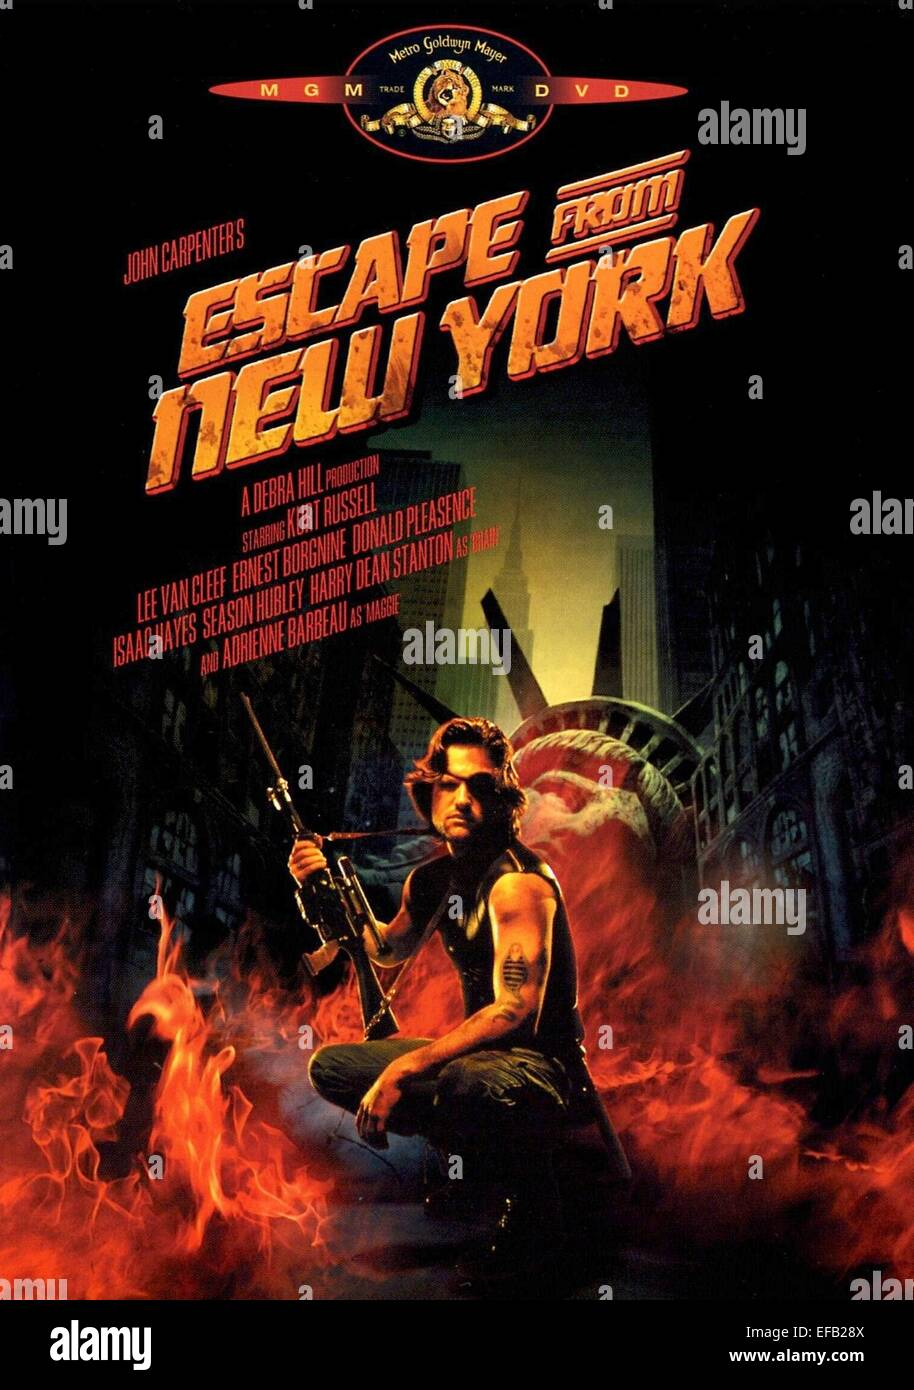 Escape From New York Poster.Kurt Russell Poster Escape From New York 1981 Stock Photo 78304602